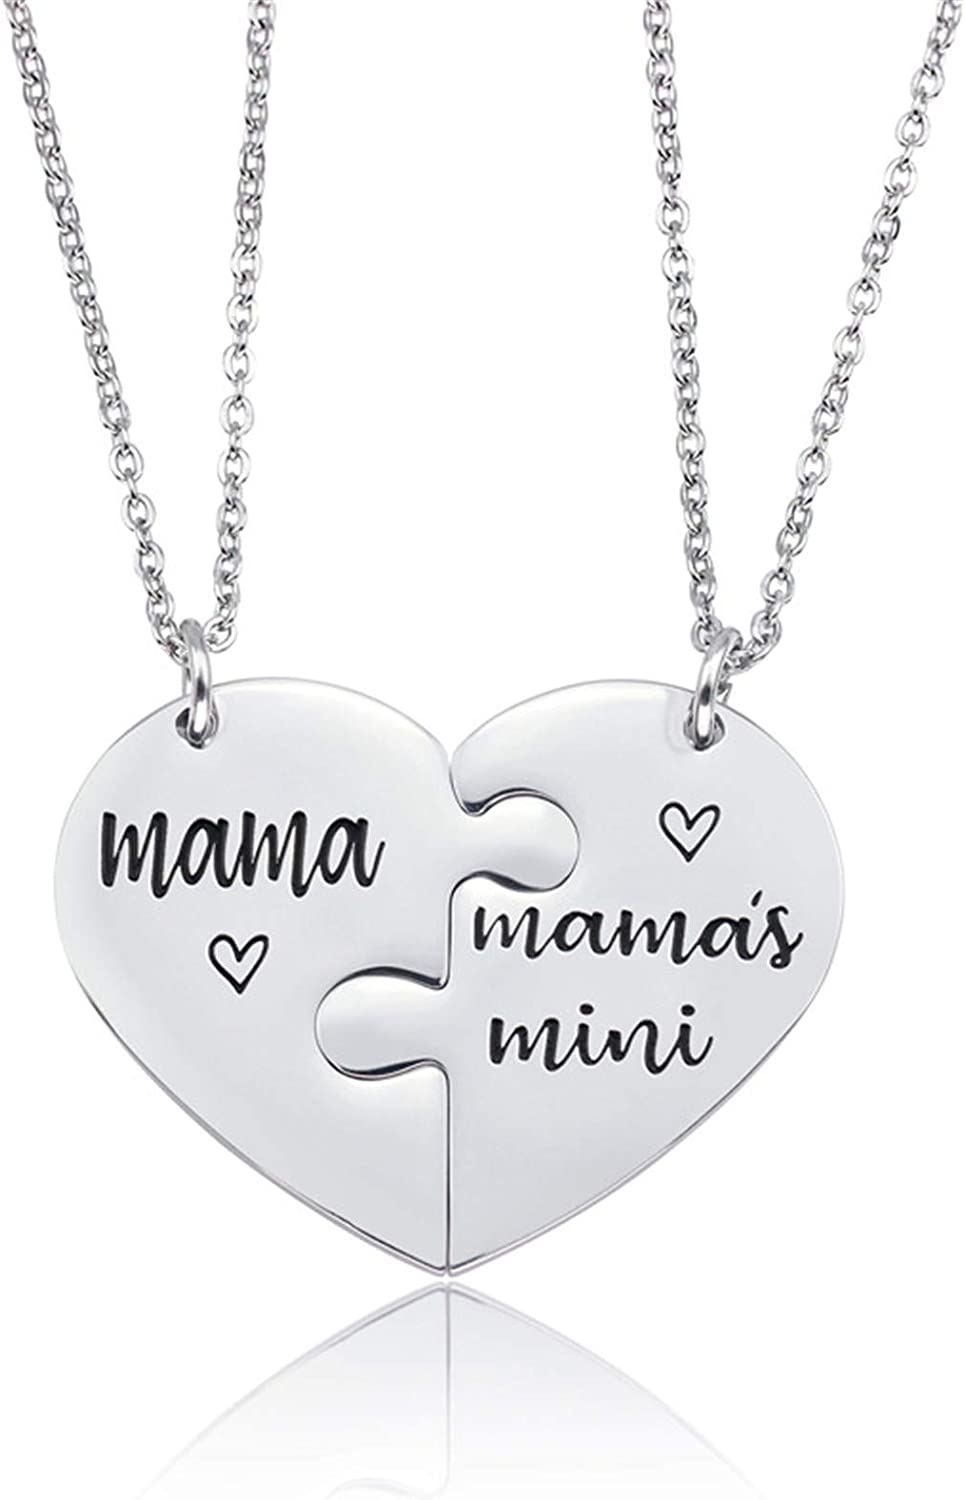 2Pcs Stainless Steel Mother Mom Daughter Puzzle Matching Pendant Necklace Set Engraved Love Heart Link Chain Necklace Christmas Mother's Day Jewelry Gifts